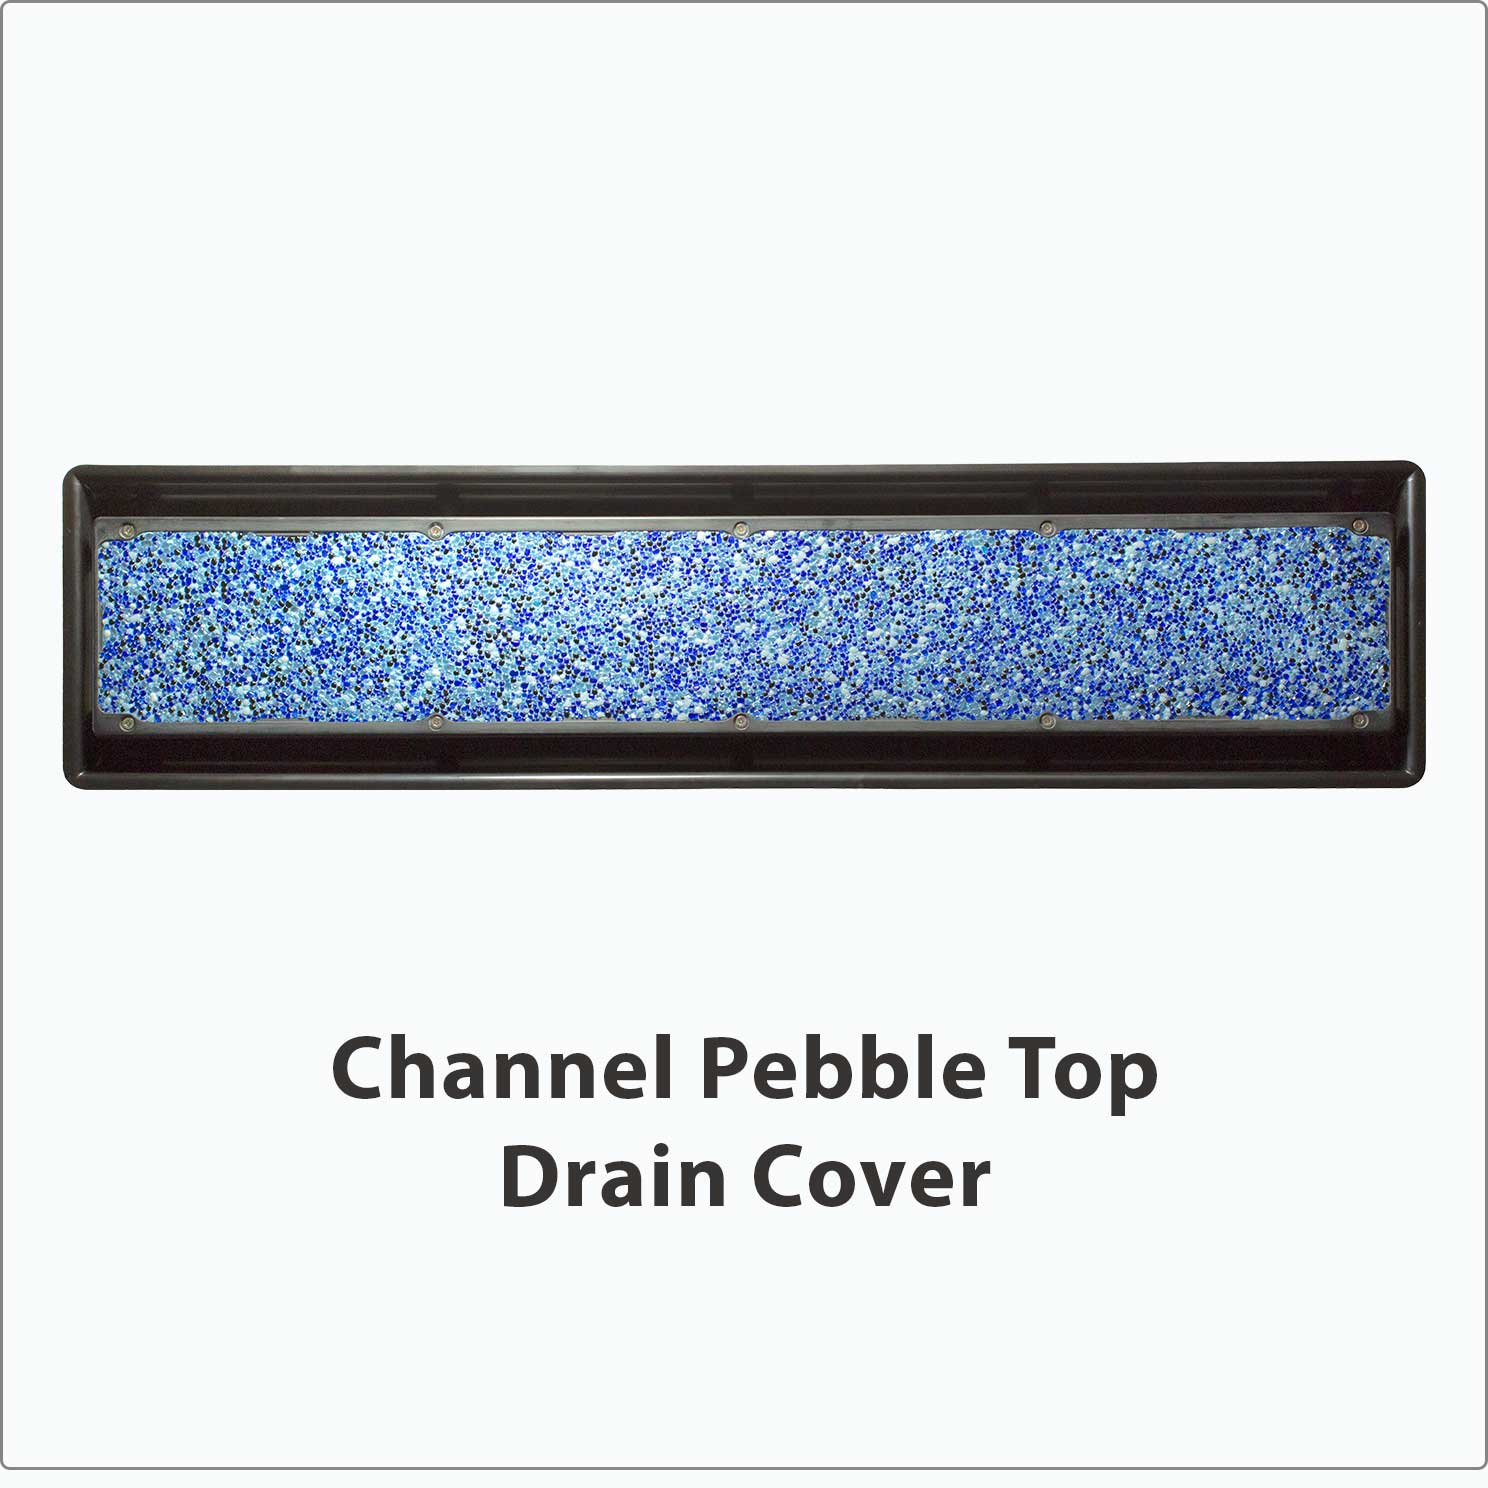 Channel Pebble Top Drain Cover